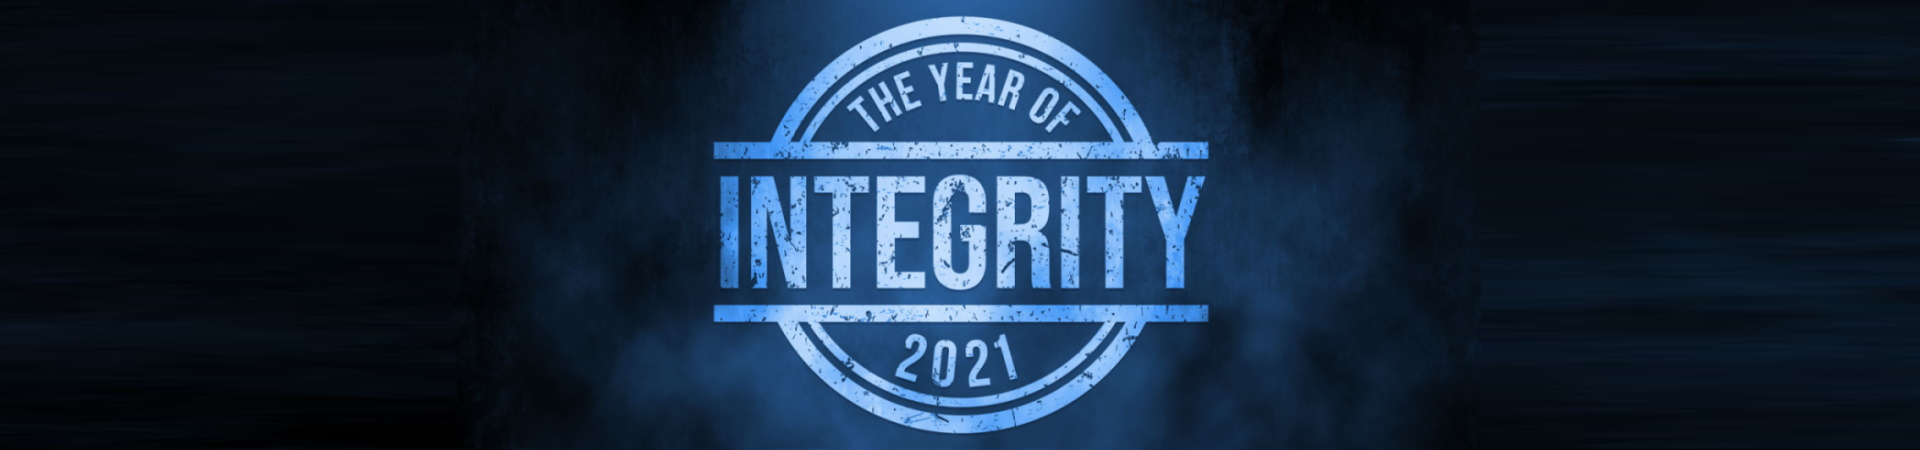 2021 The Year of Integrity